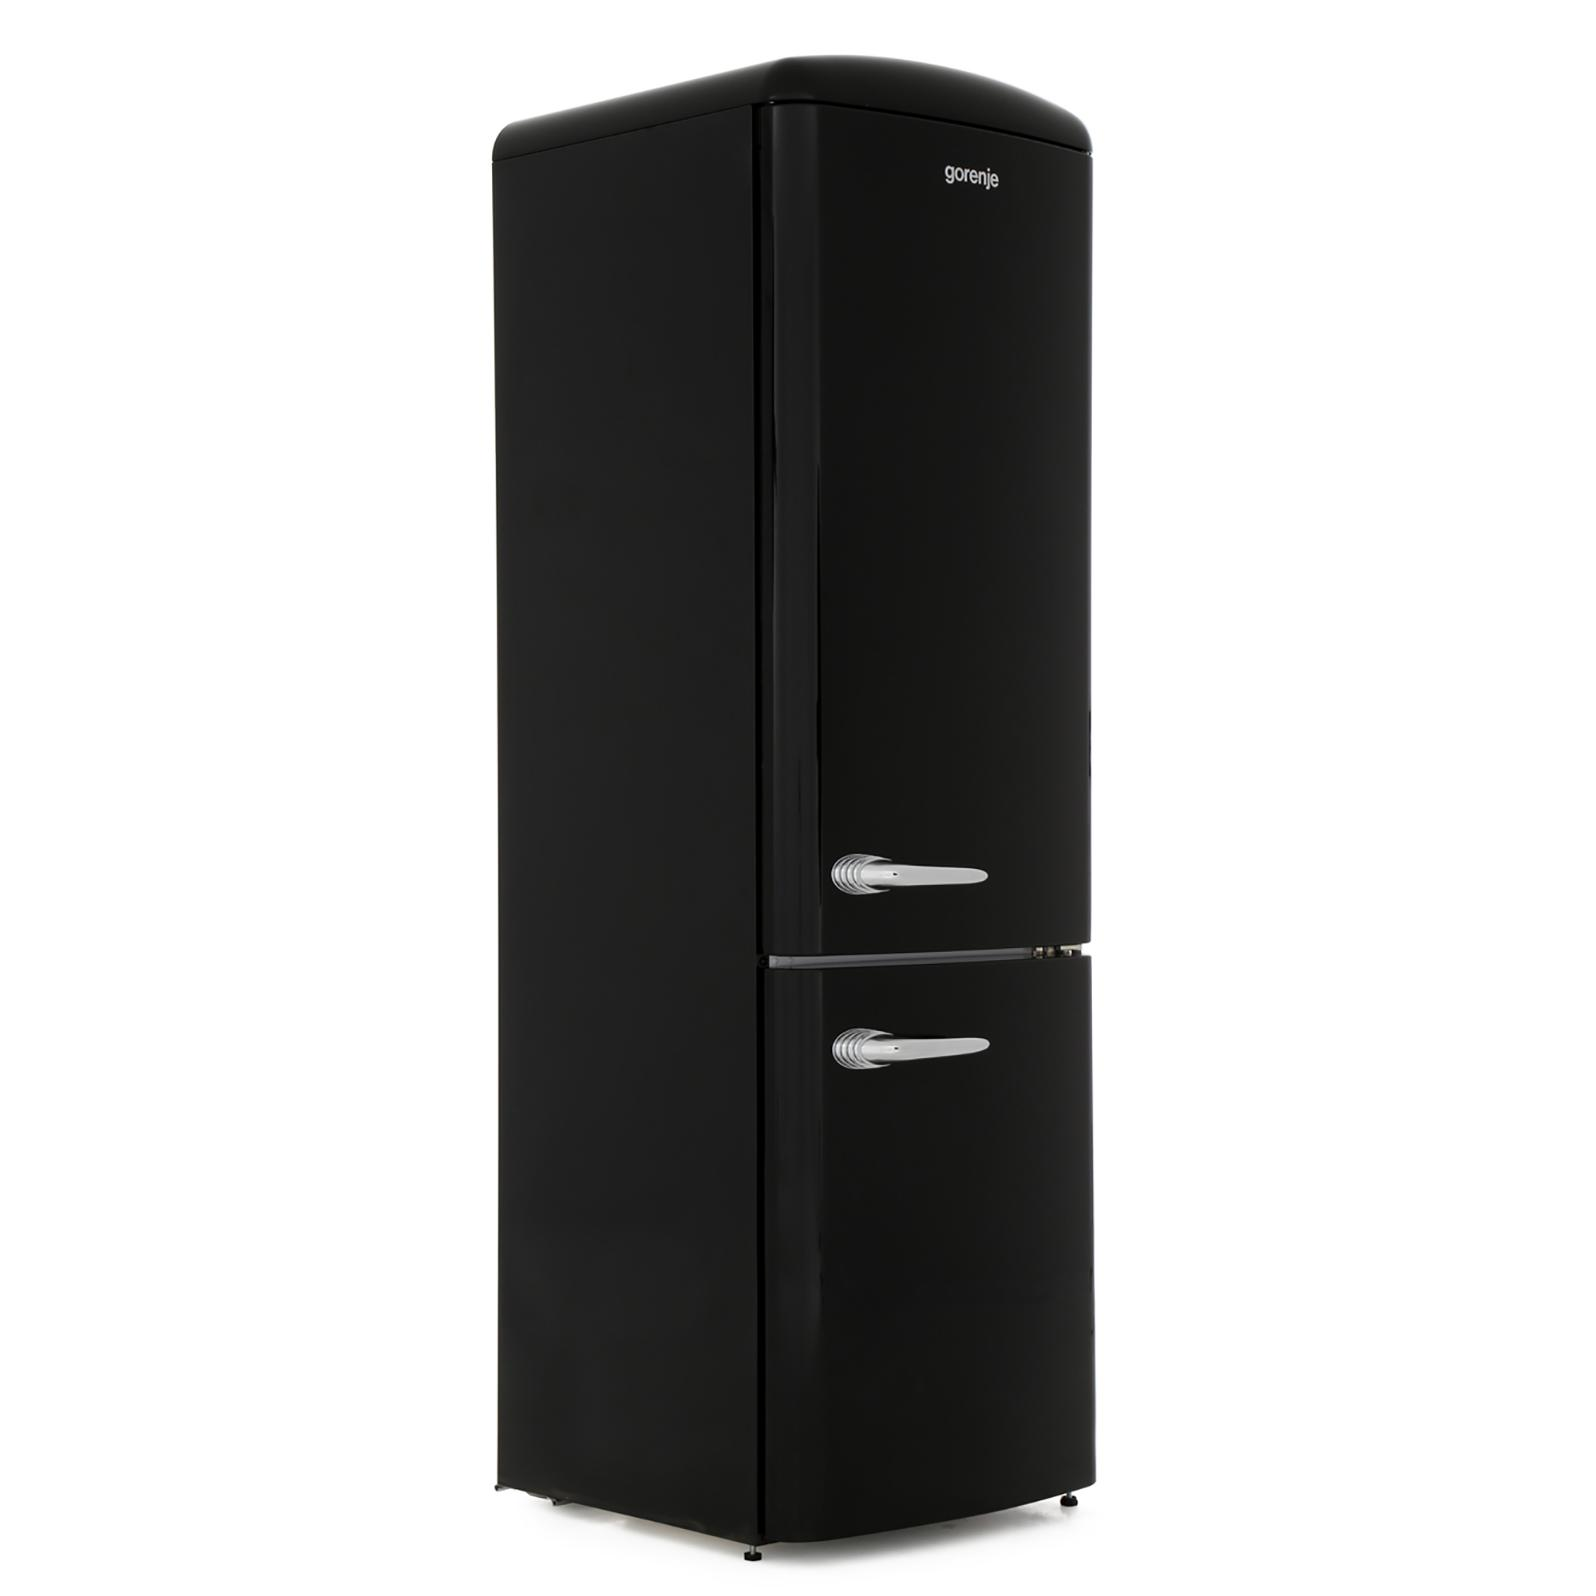 Gorenje ONRK193BK Retro Frost Free Fridge Freezer